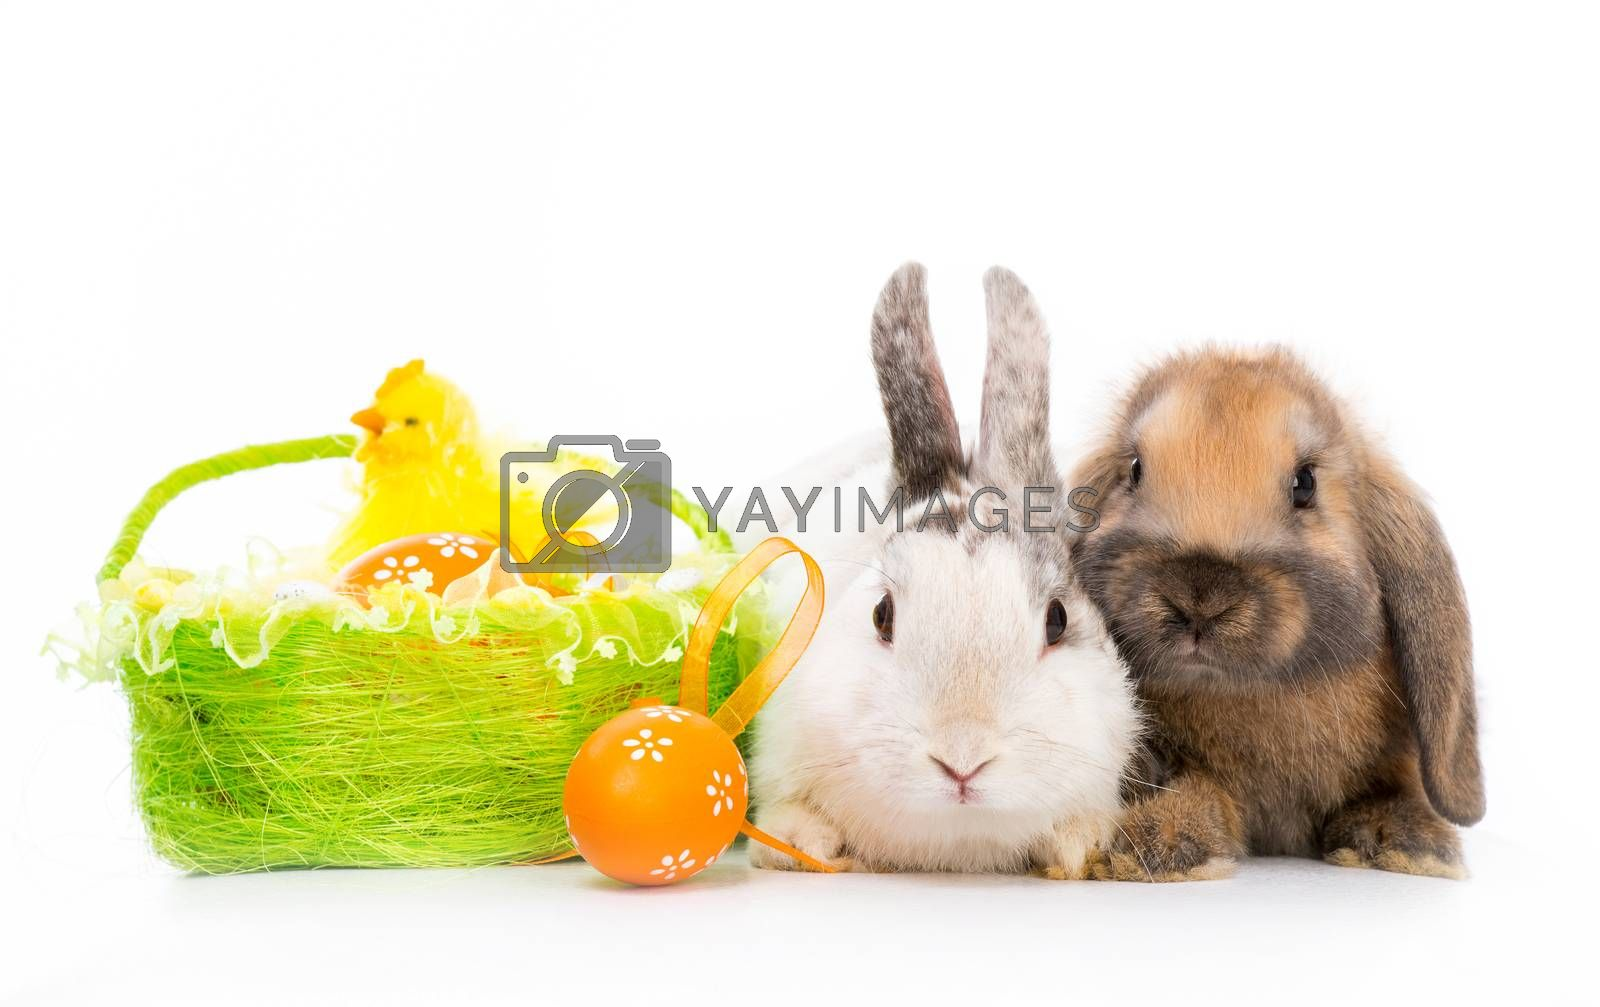 Royalty free image of rabbits on white by GekaSkr